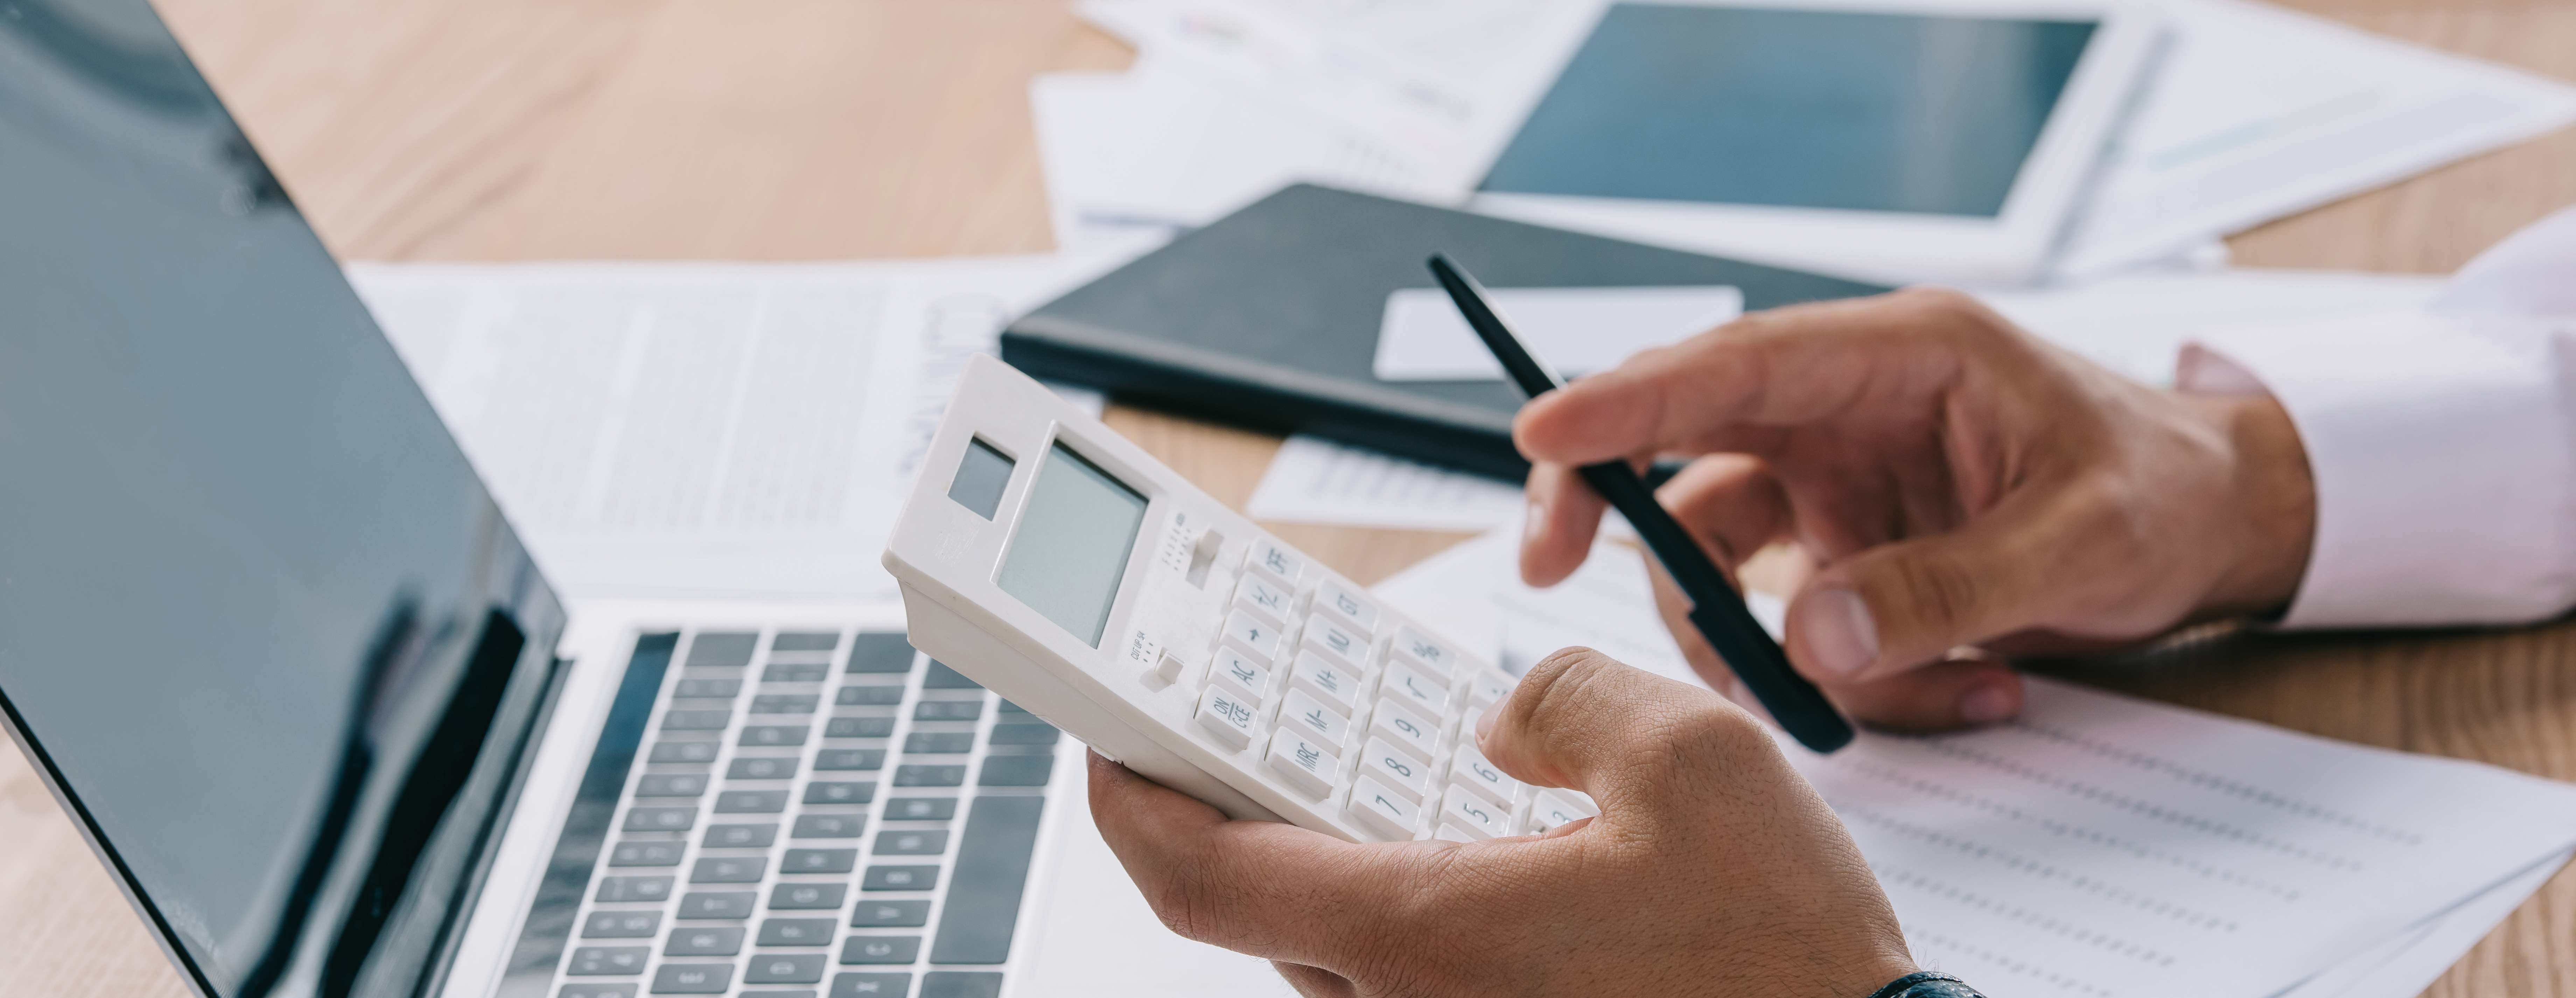 business man using calculator in office